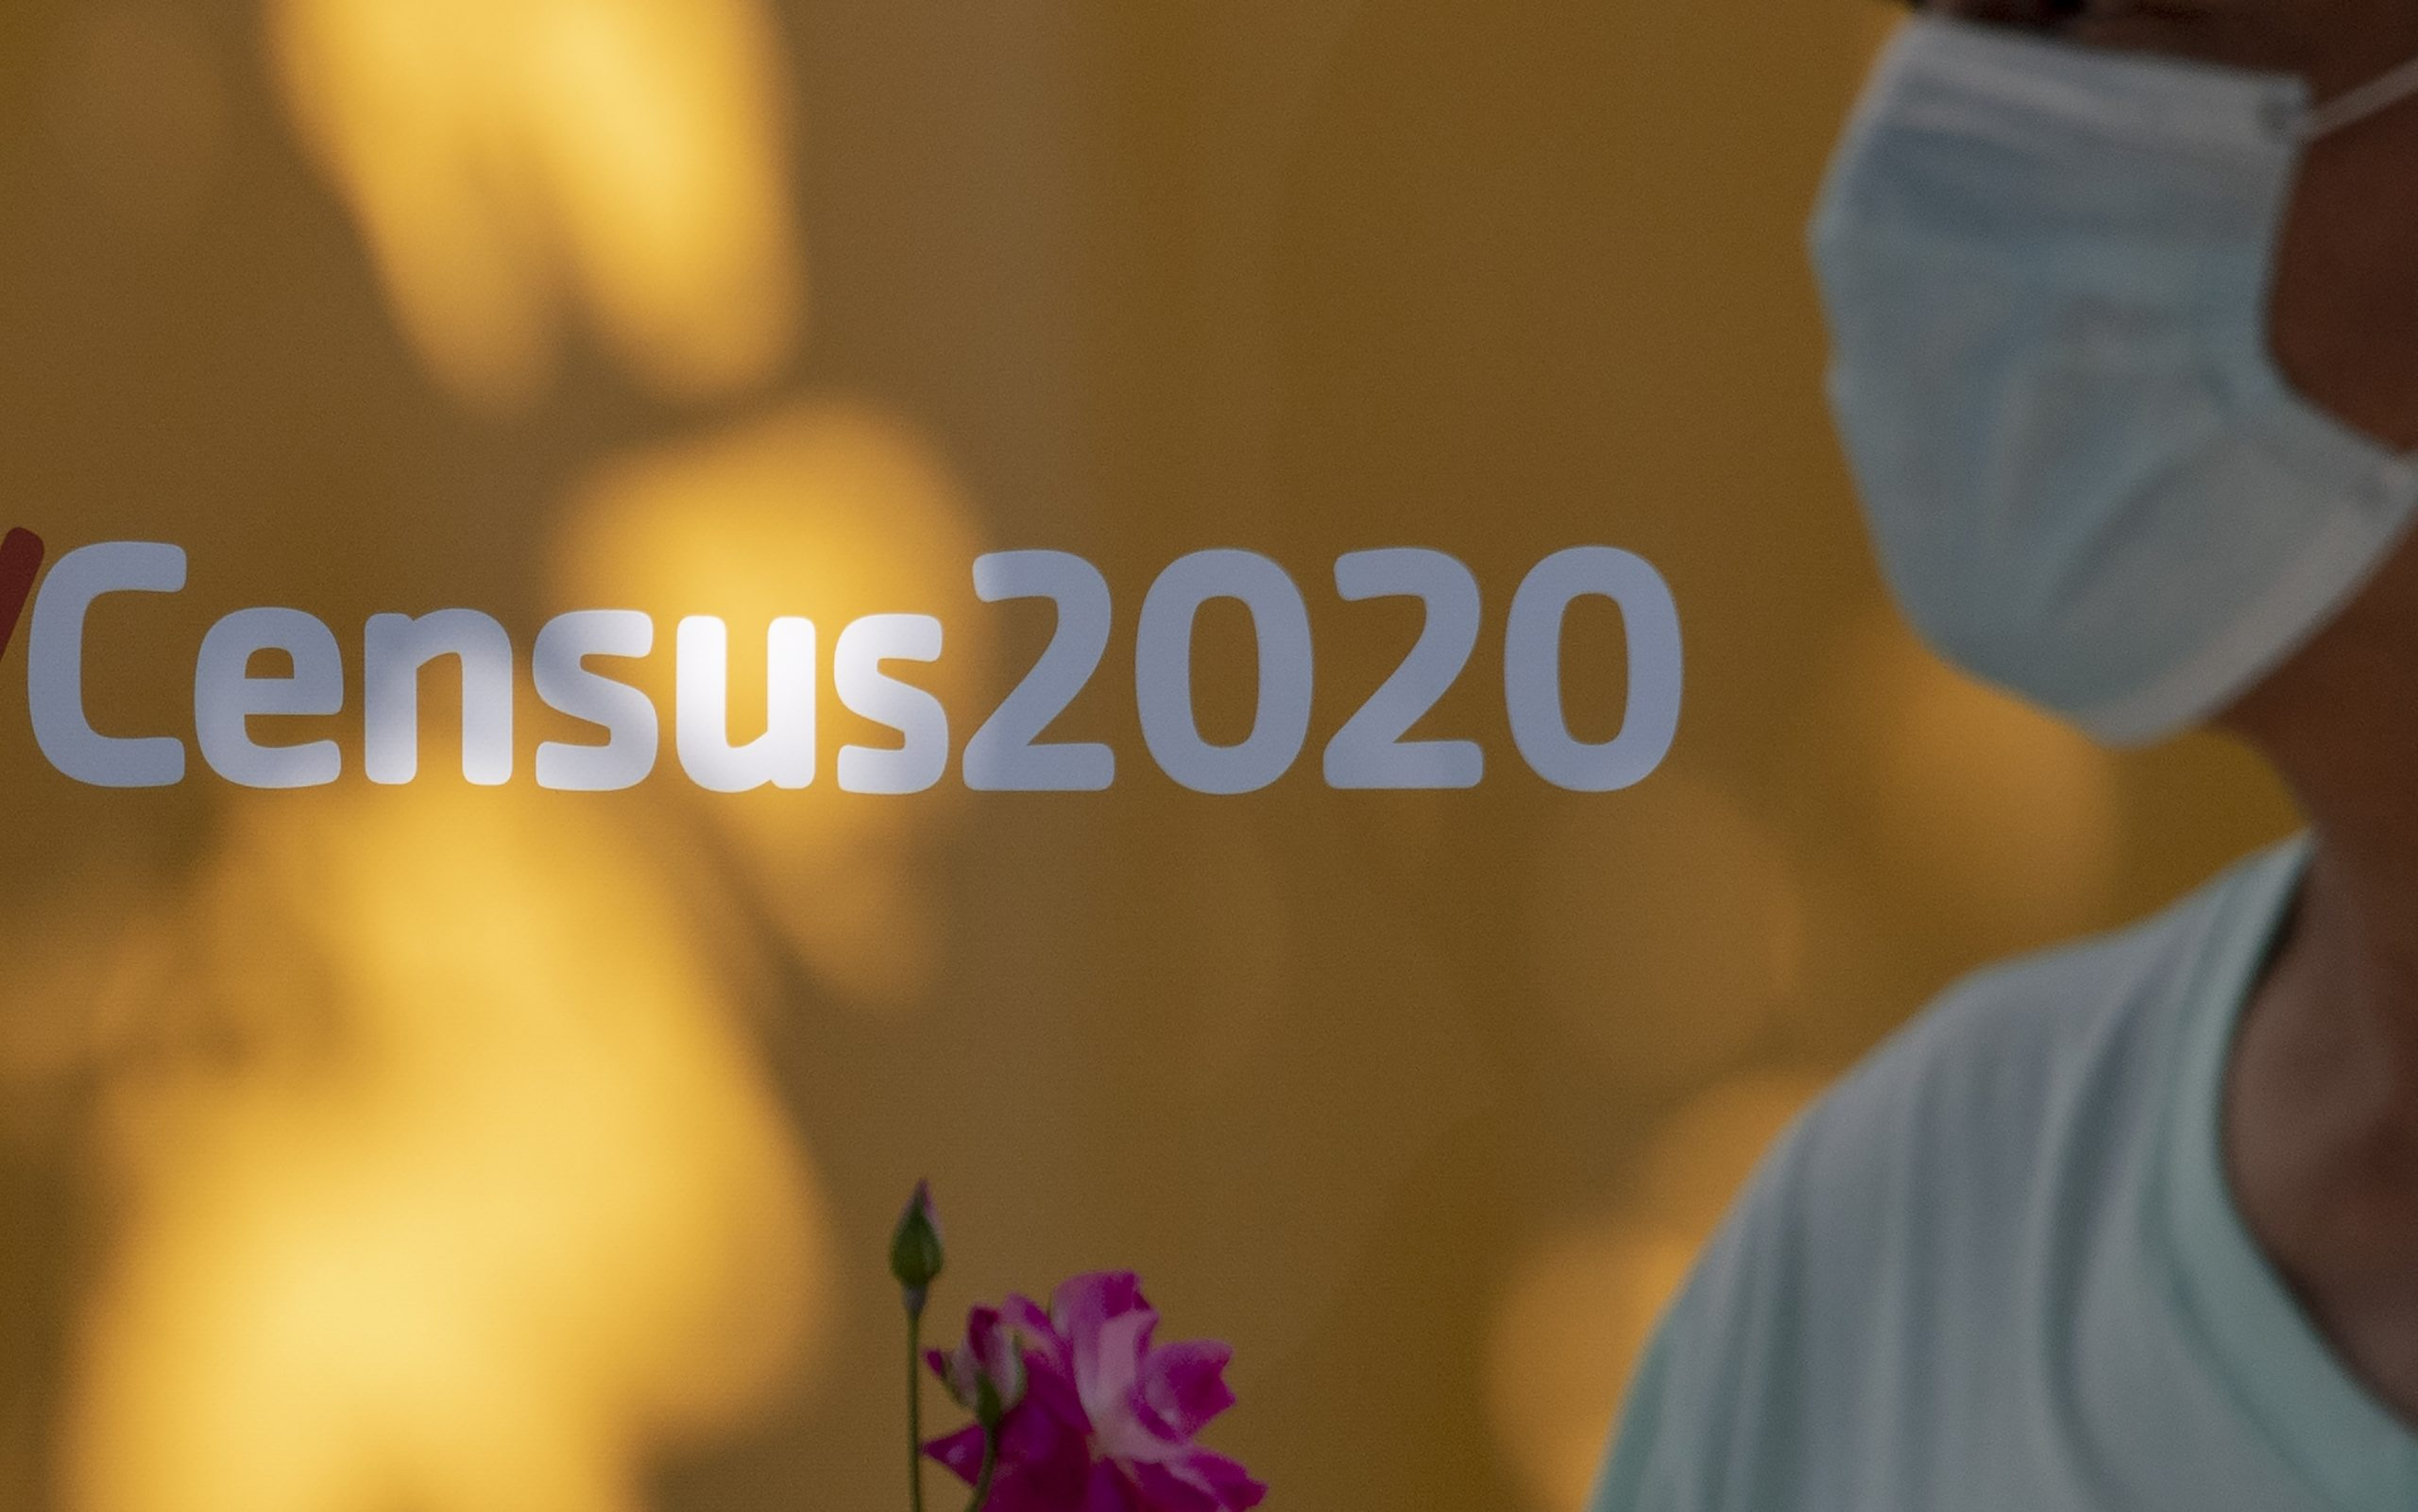 A man wearing a facemask walks past a sign encouraging people to complete the 2020 US Census, in Los Angeles, California, August 10, 2020 amid the COVID-19 pandemic. - The result of the Census, which the Census Bureau announced it would end one month early, on September 30, directly affects the amount of funding a community receives for services including public schools, hospitals and fire departments. (Photo by ROBYN BECK/AFP via Getty Images)